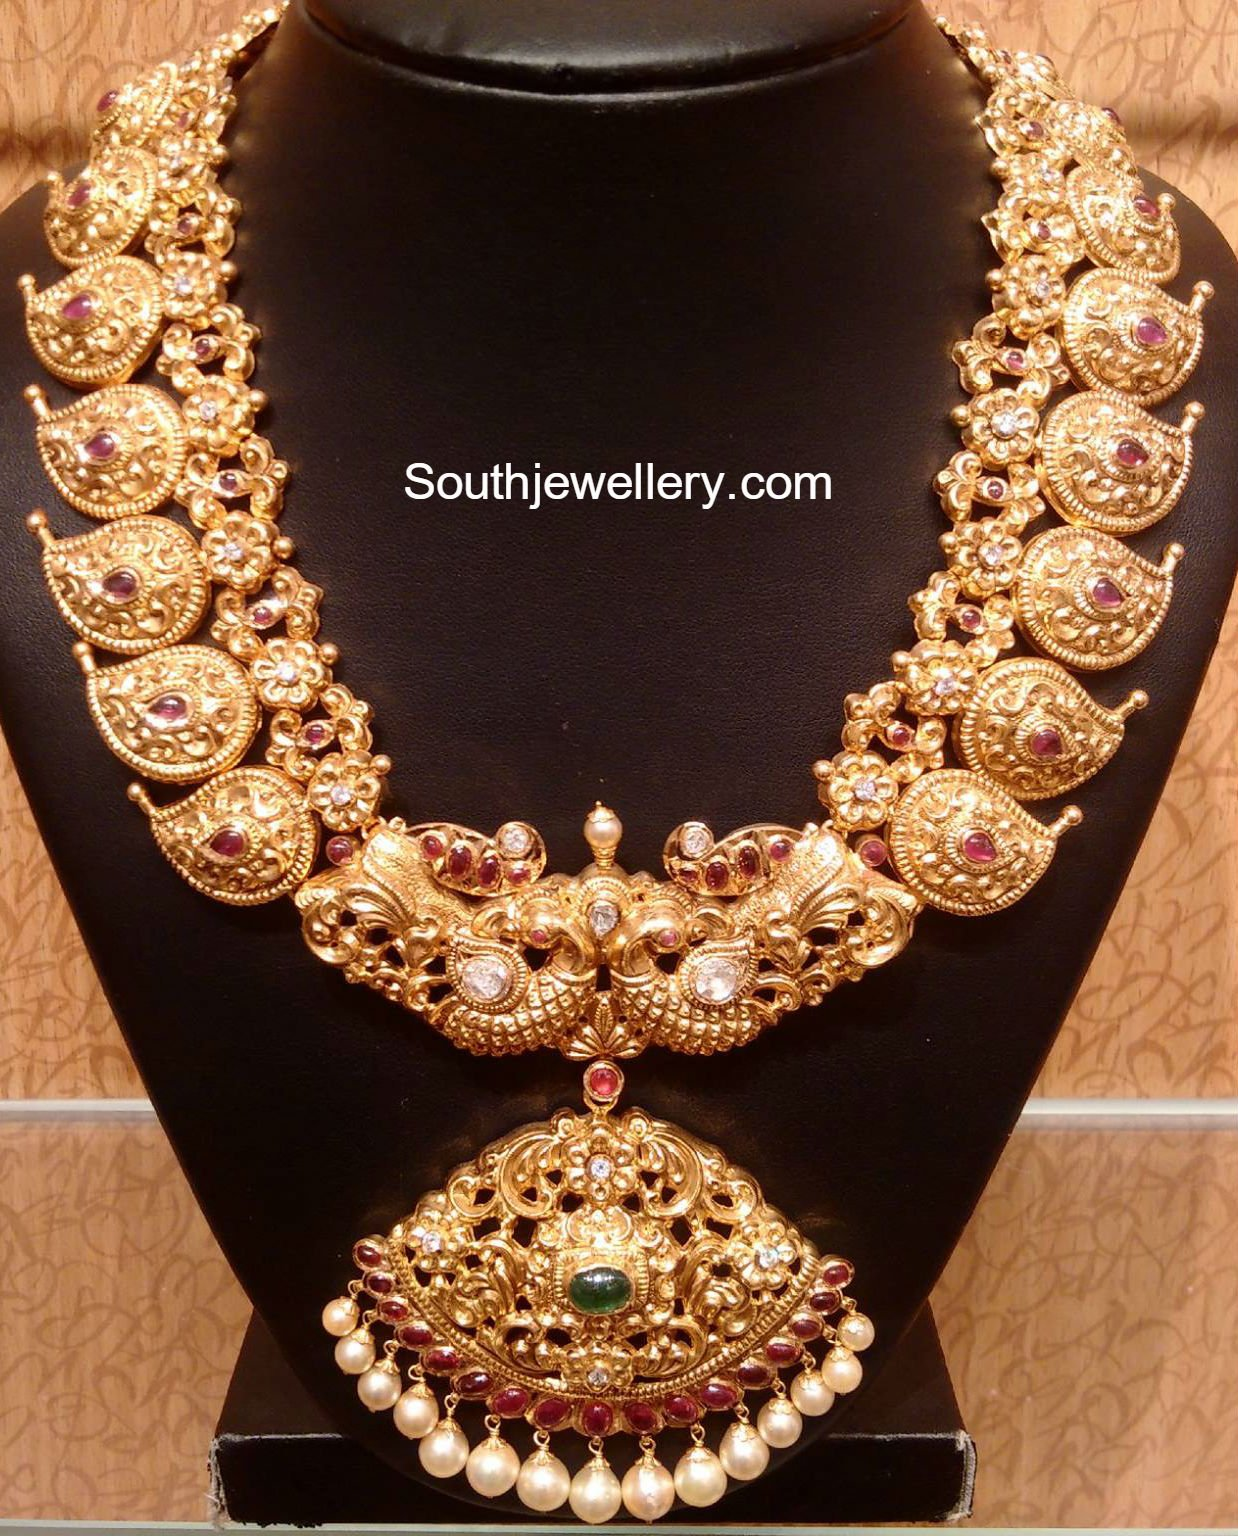 Indian Gold Jewellery From Websites For: Latest Indian Jewellery Designs 2016